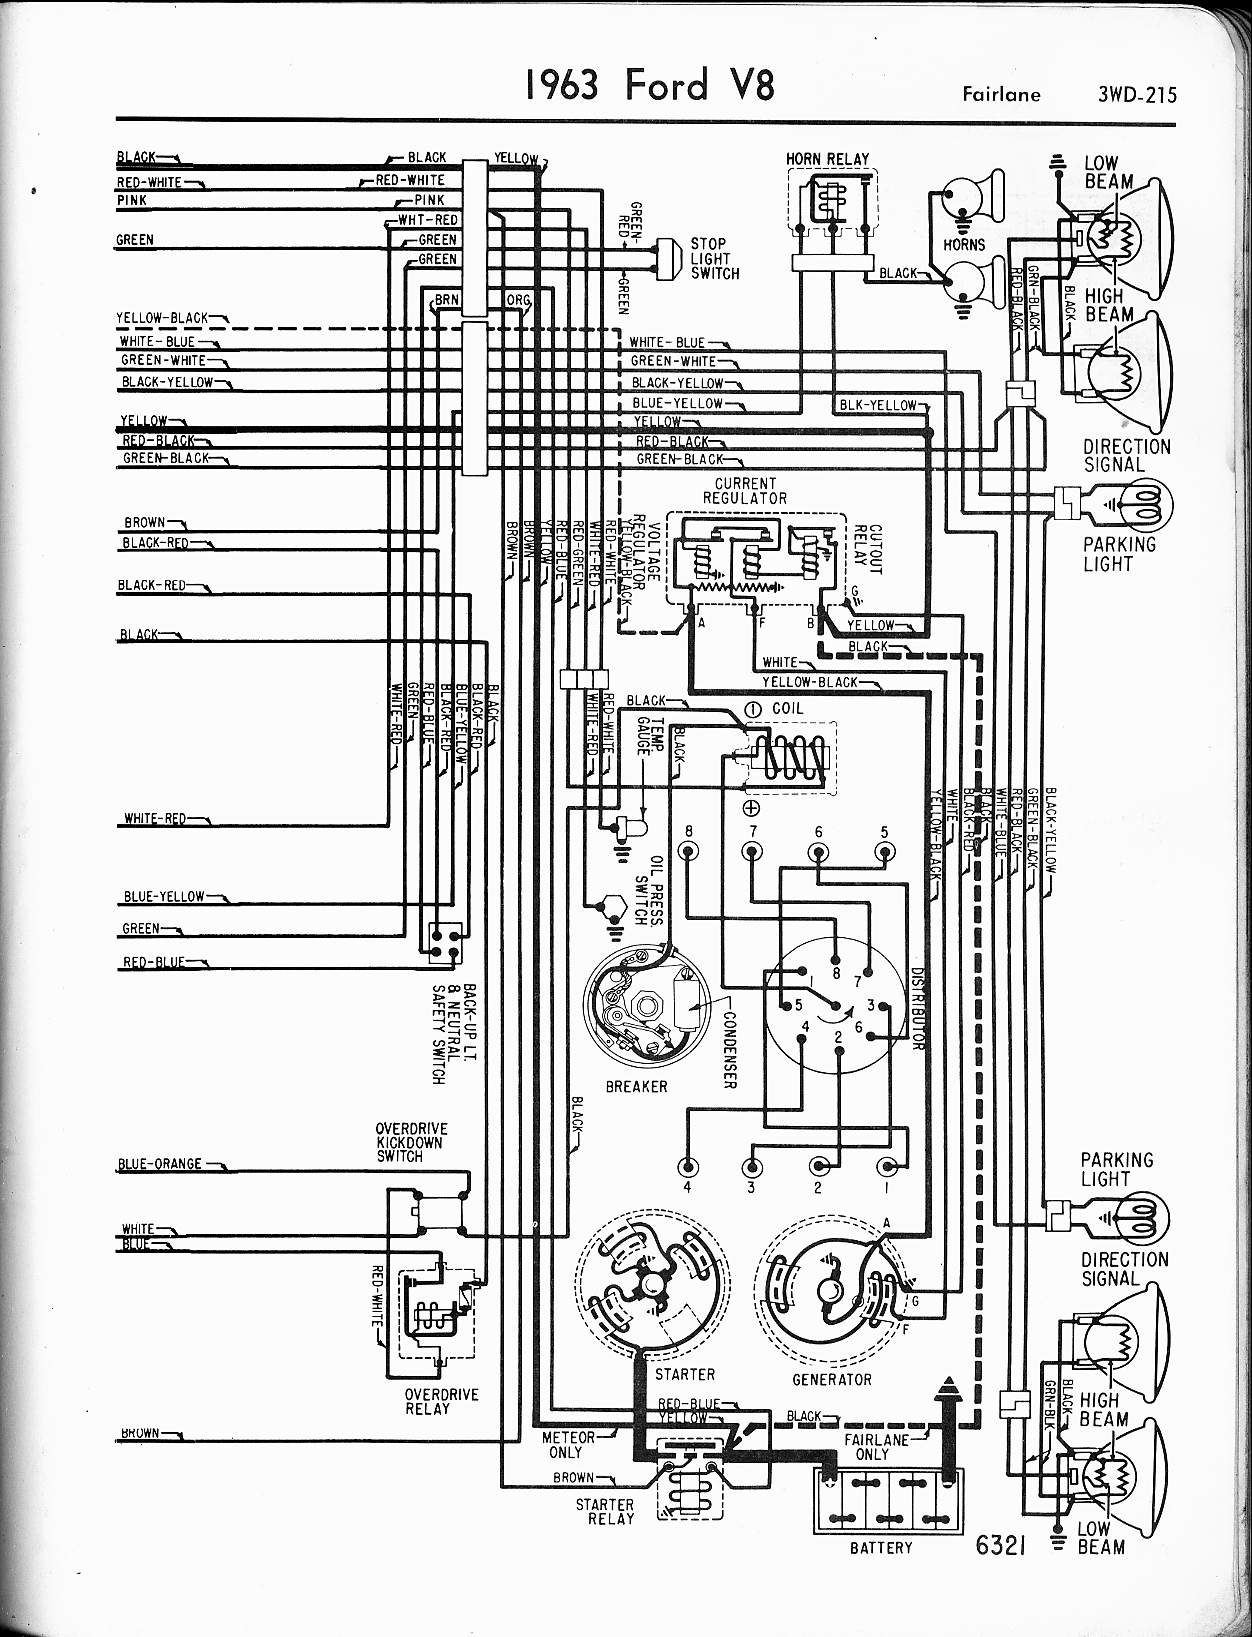 MWire5765 215 1965 ford falcon wiring diagram 1965 ford falcon dash wiring 1965 ford thunderbird wiring diagram at crackthecode.co